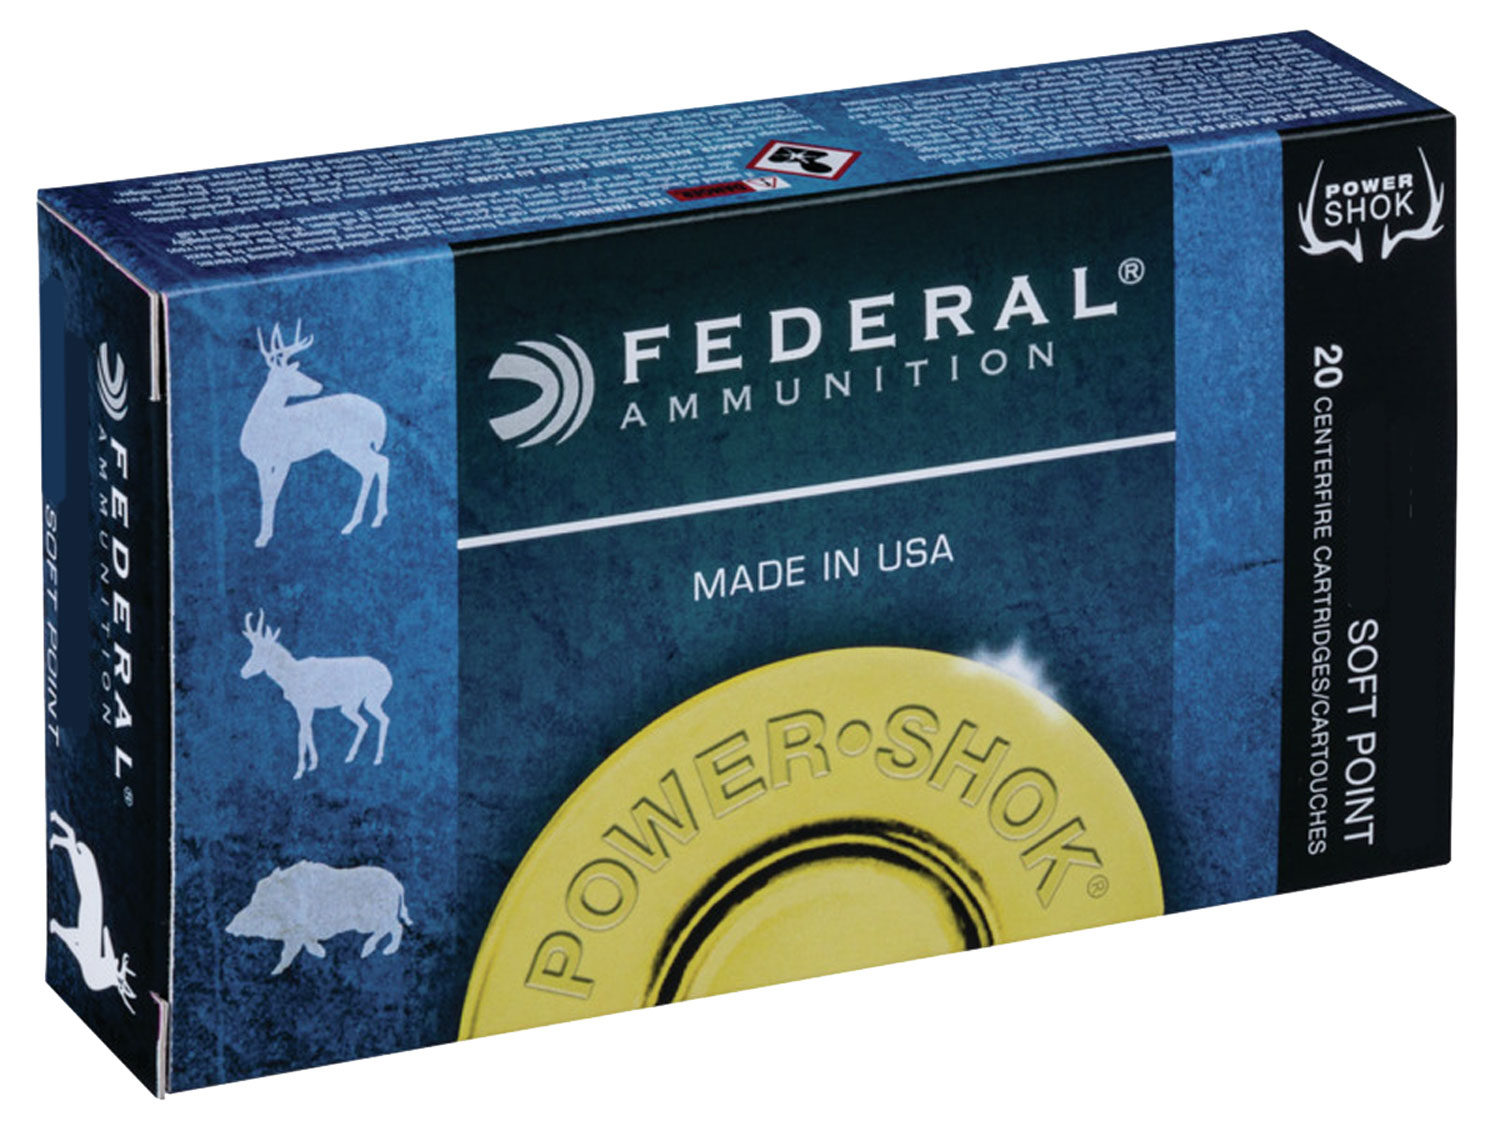 Federal 308DT150 Non-Typical Whitetail  308 Winchester/7.62 NATO 150 GR Soft Point 20 Bx/ 10 Cs